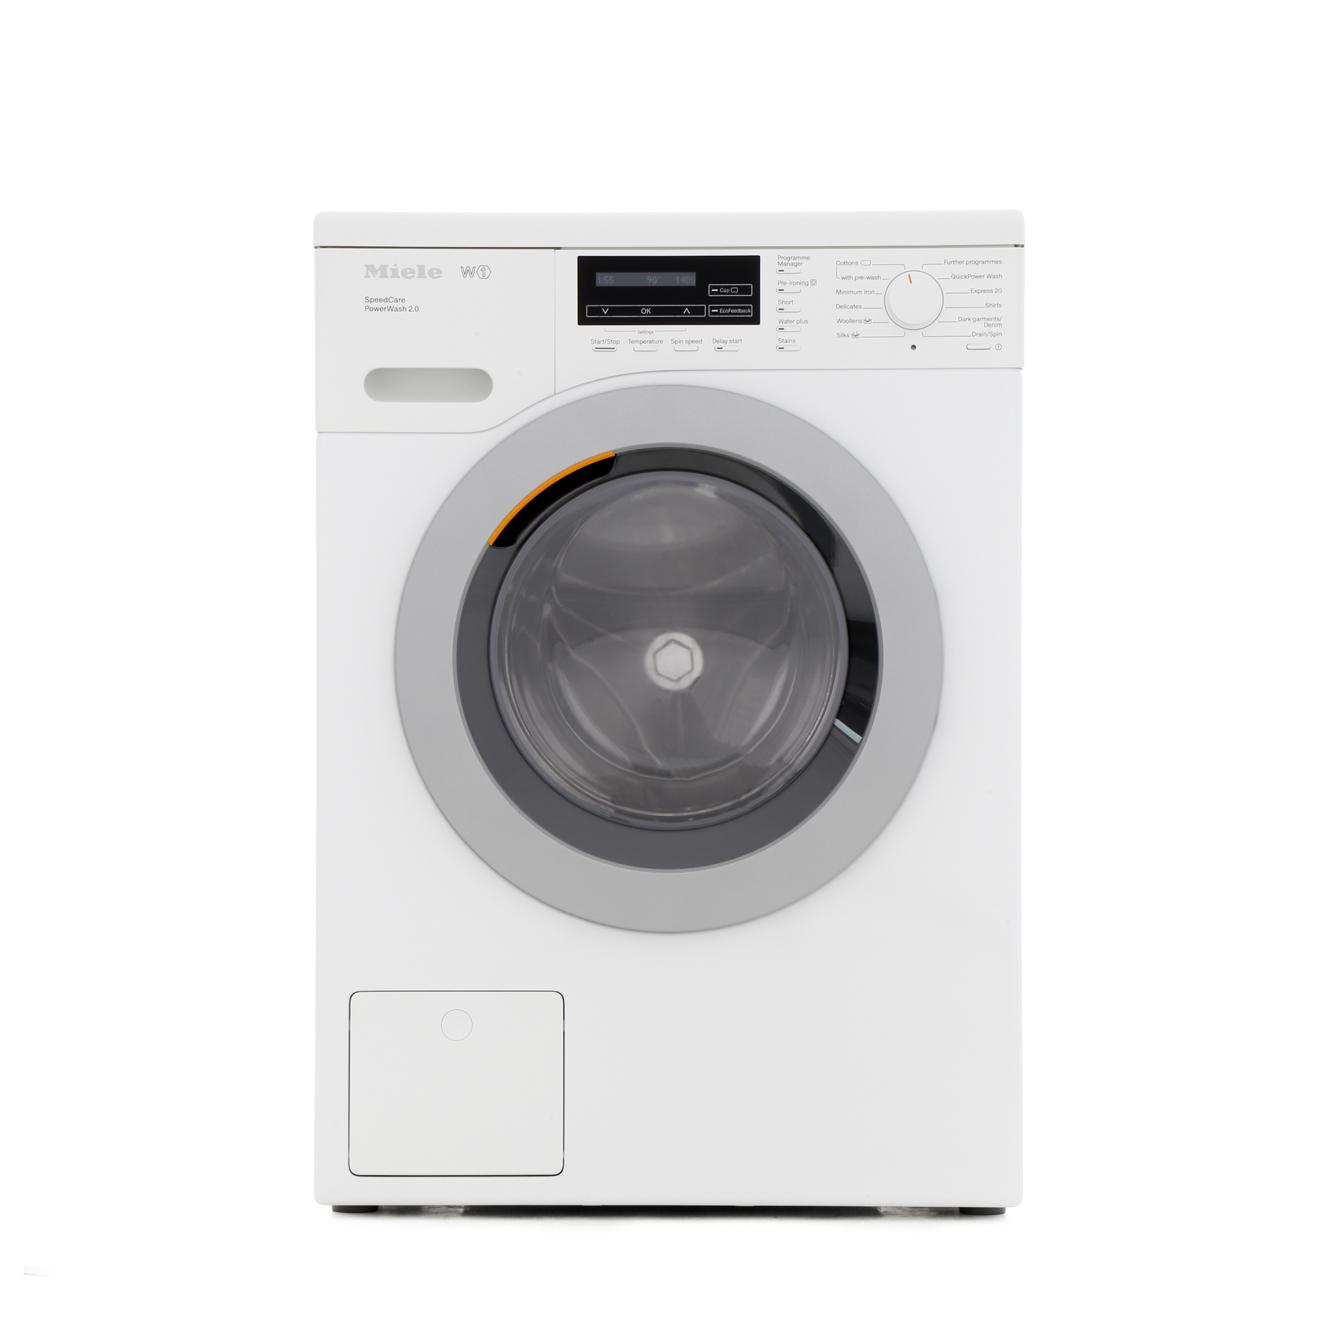 Buy Miele W1 - ChromeEdition WKF301 White Washing Machine ...